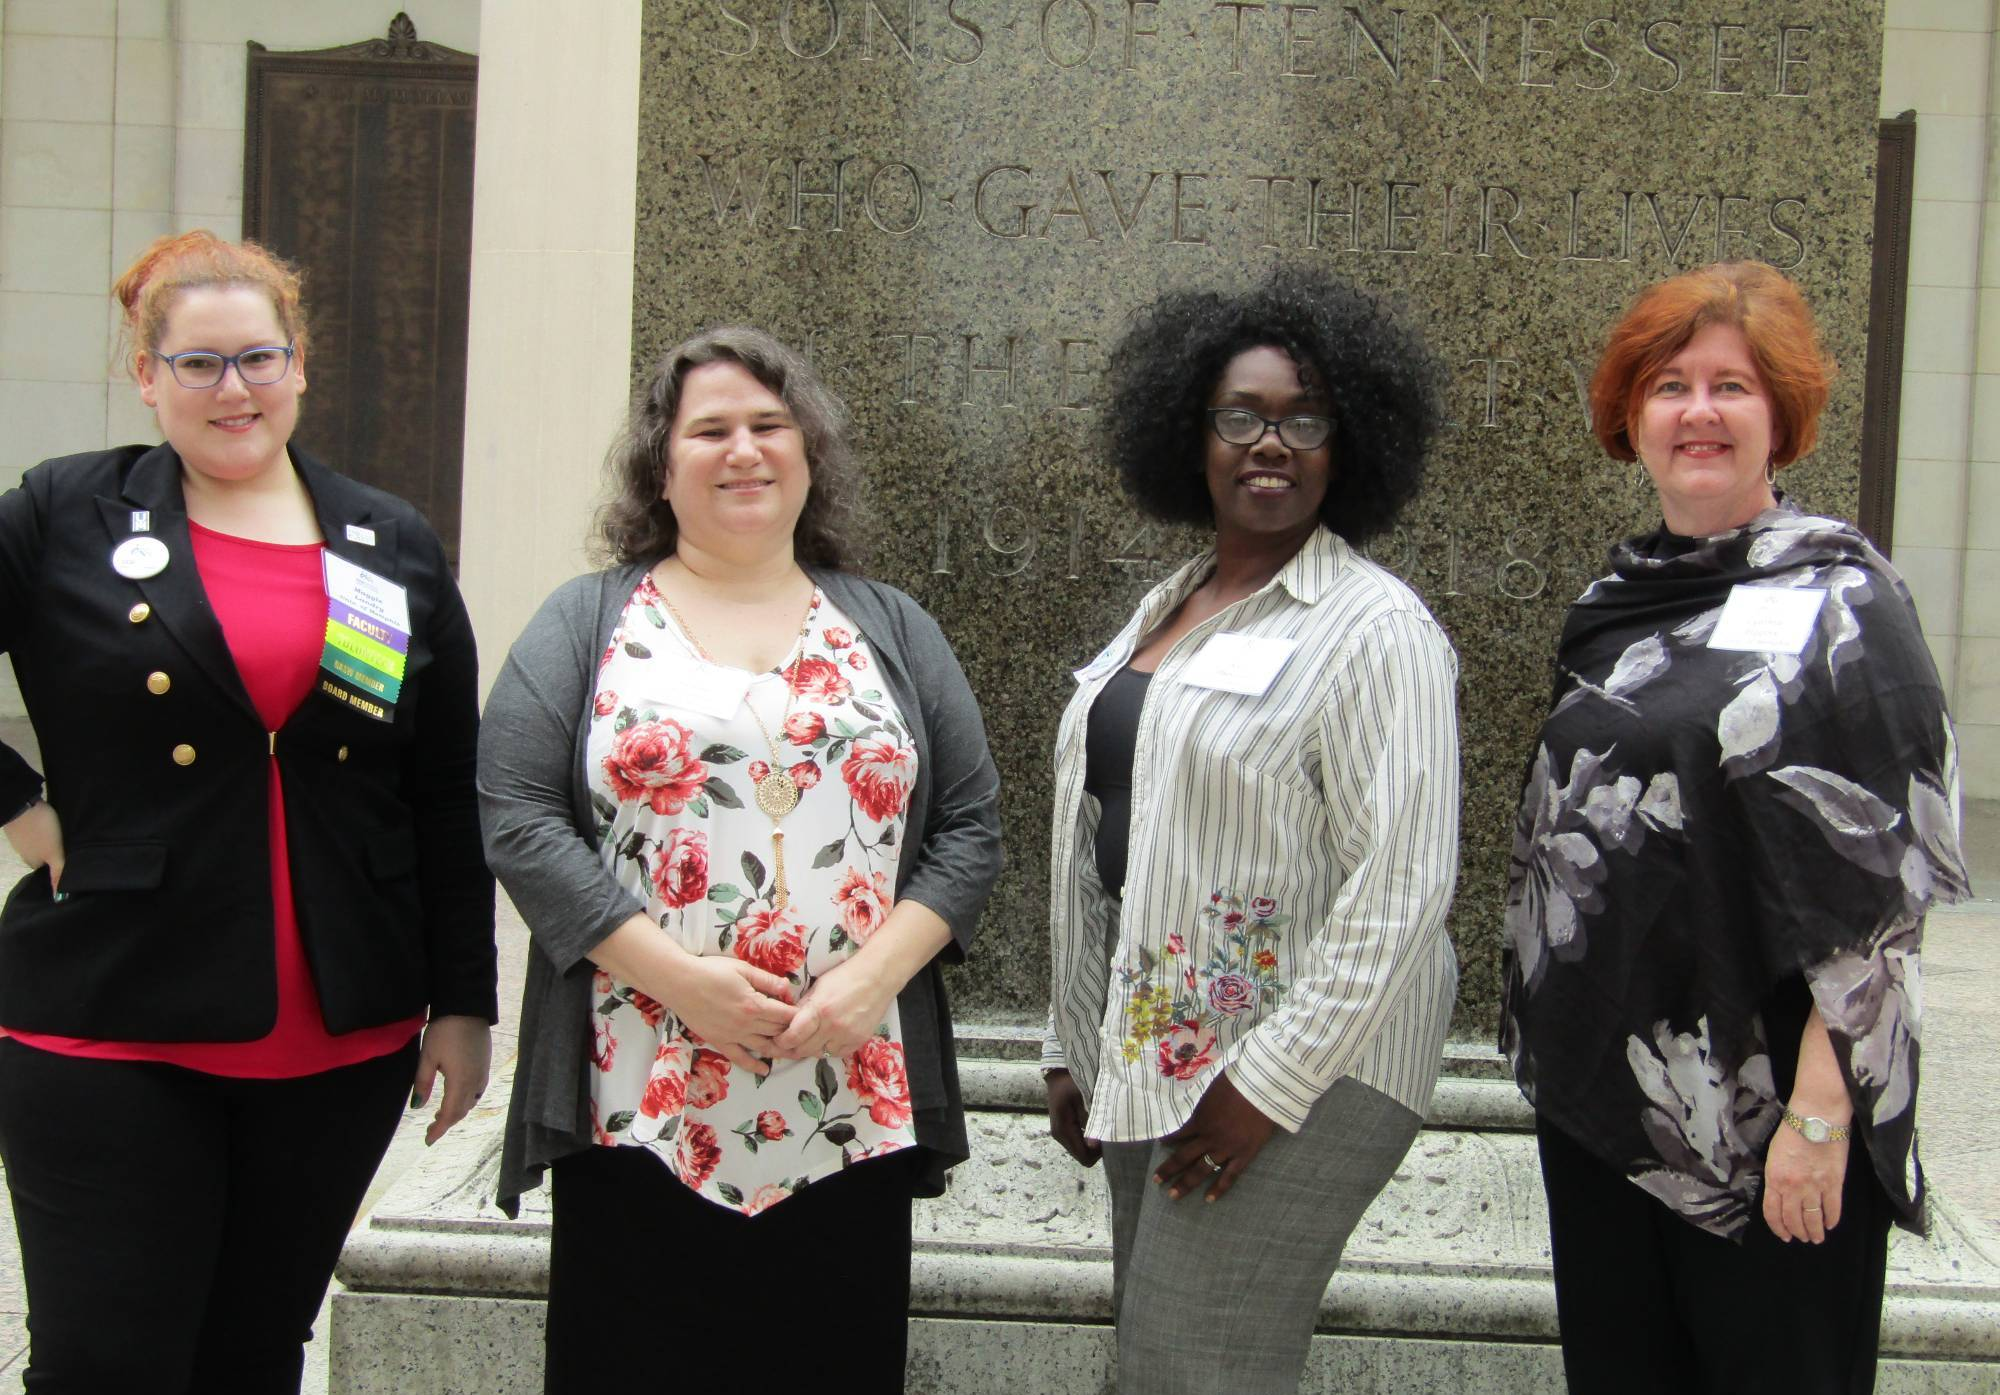 Instructor Maggie Landry and several students at the Tennessee State House in Nashville, TN